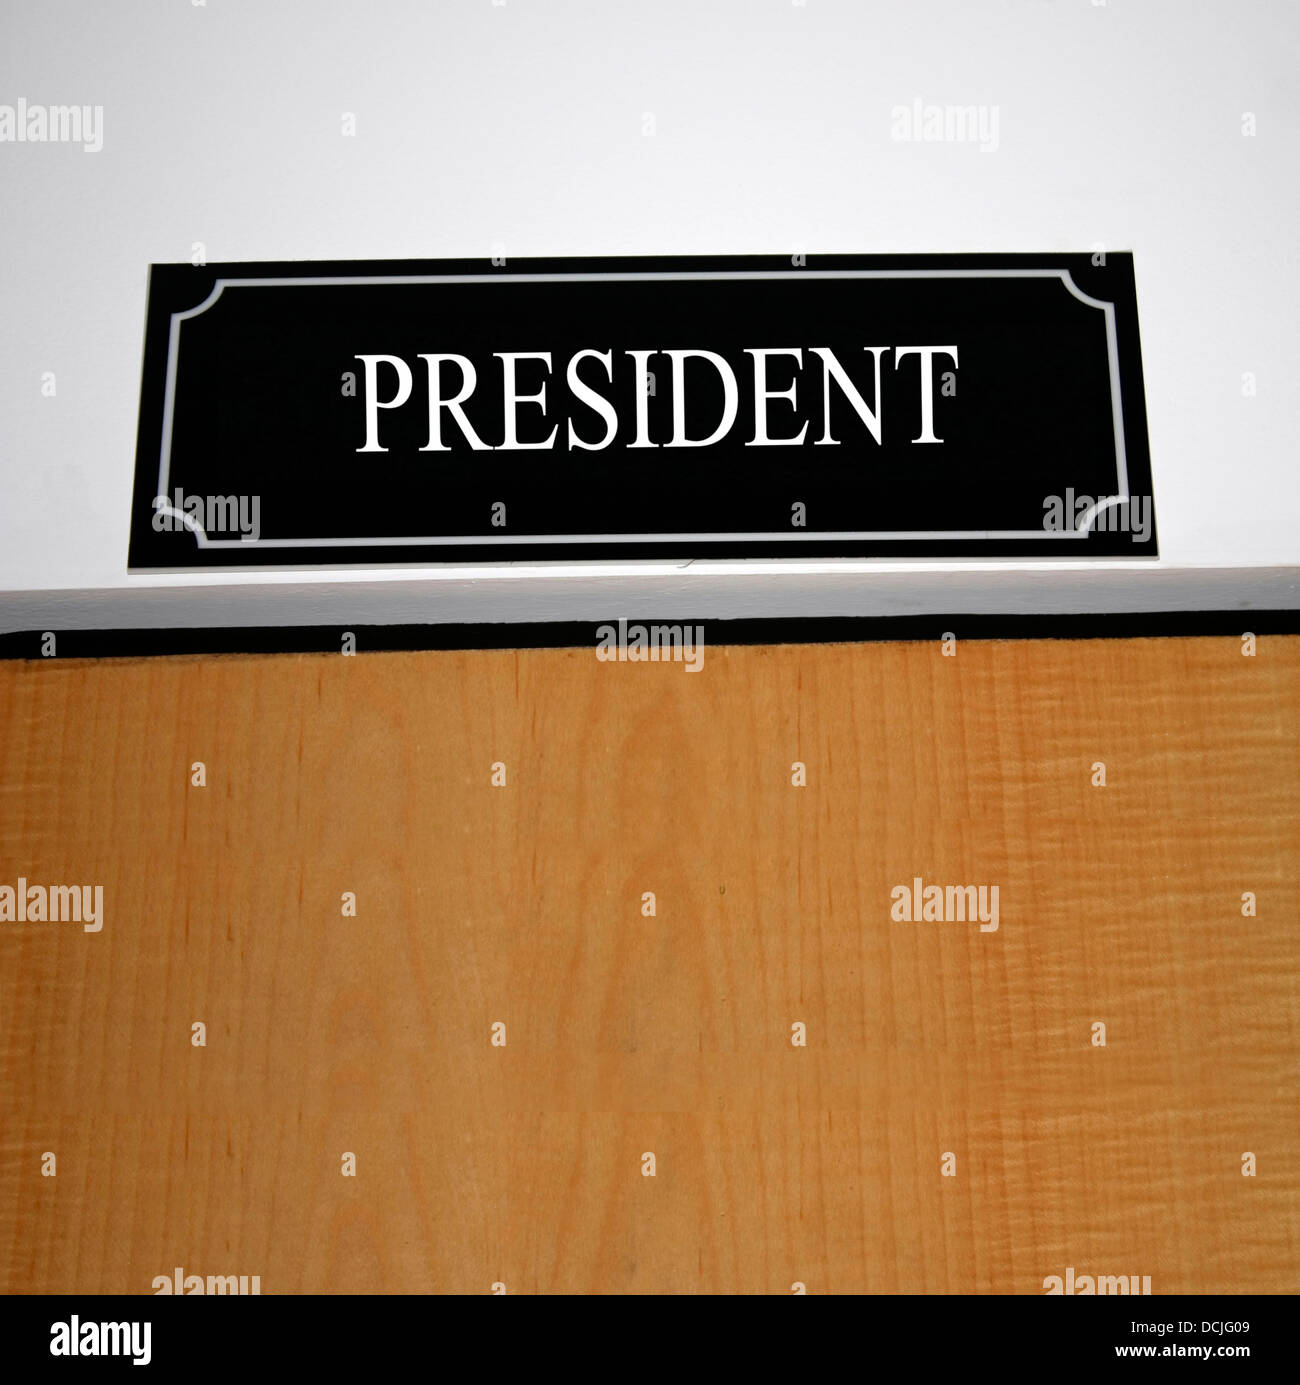 Board displayed in front of the President's room - Stock Image